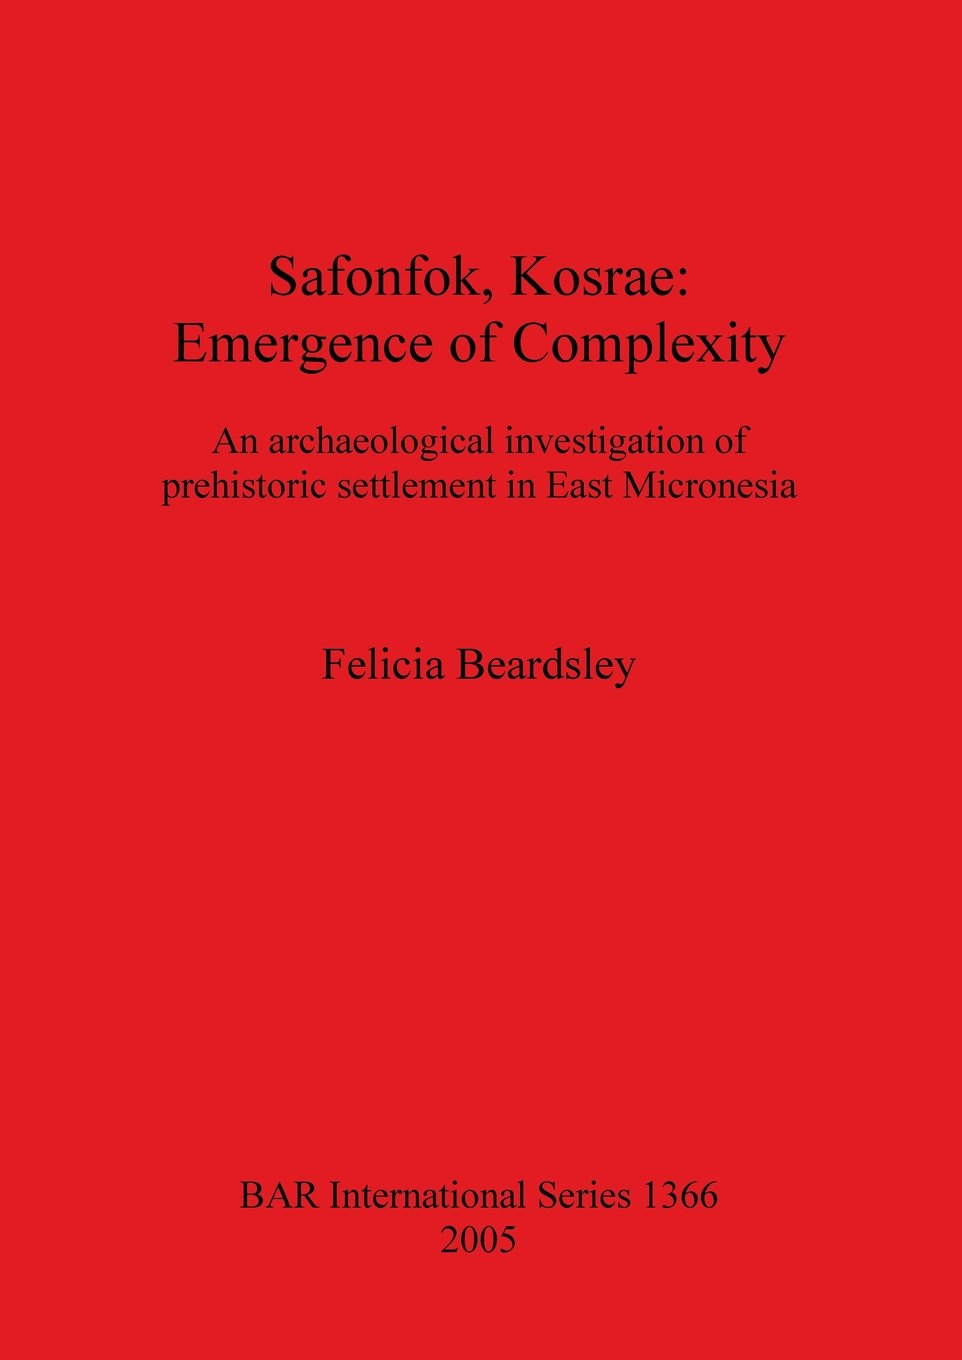 Safonfok, Kosrae: Emergence of Complexity. An archaeological investigation of prehistoric settlement in East Micronesia (BAR International Series) pdf epub